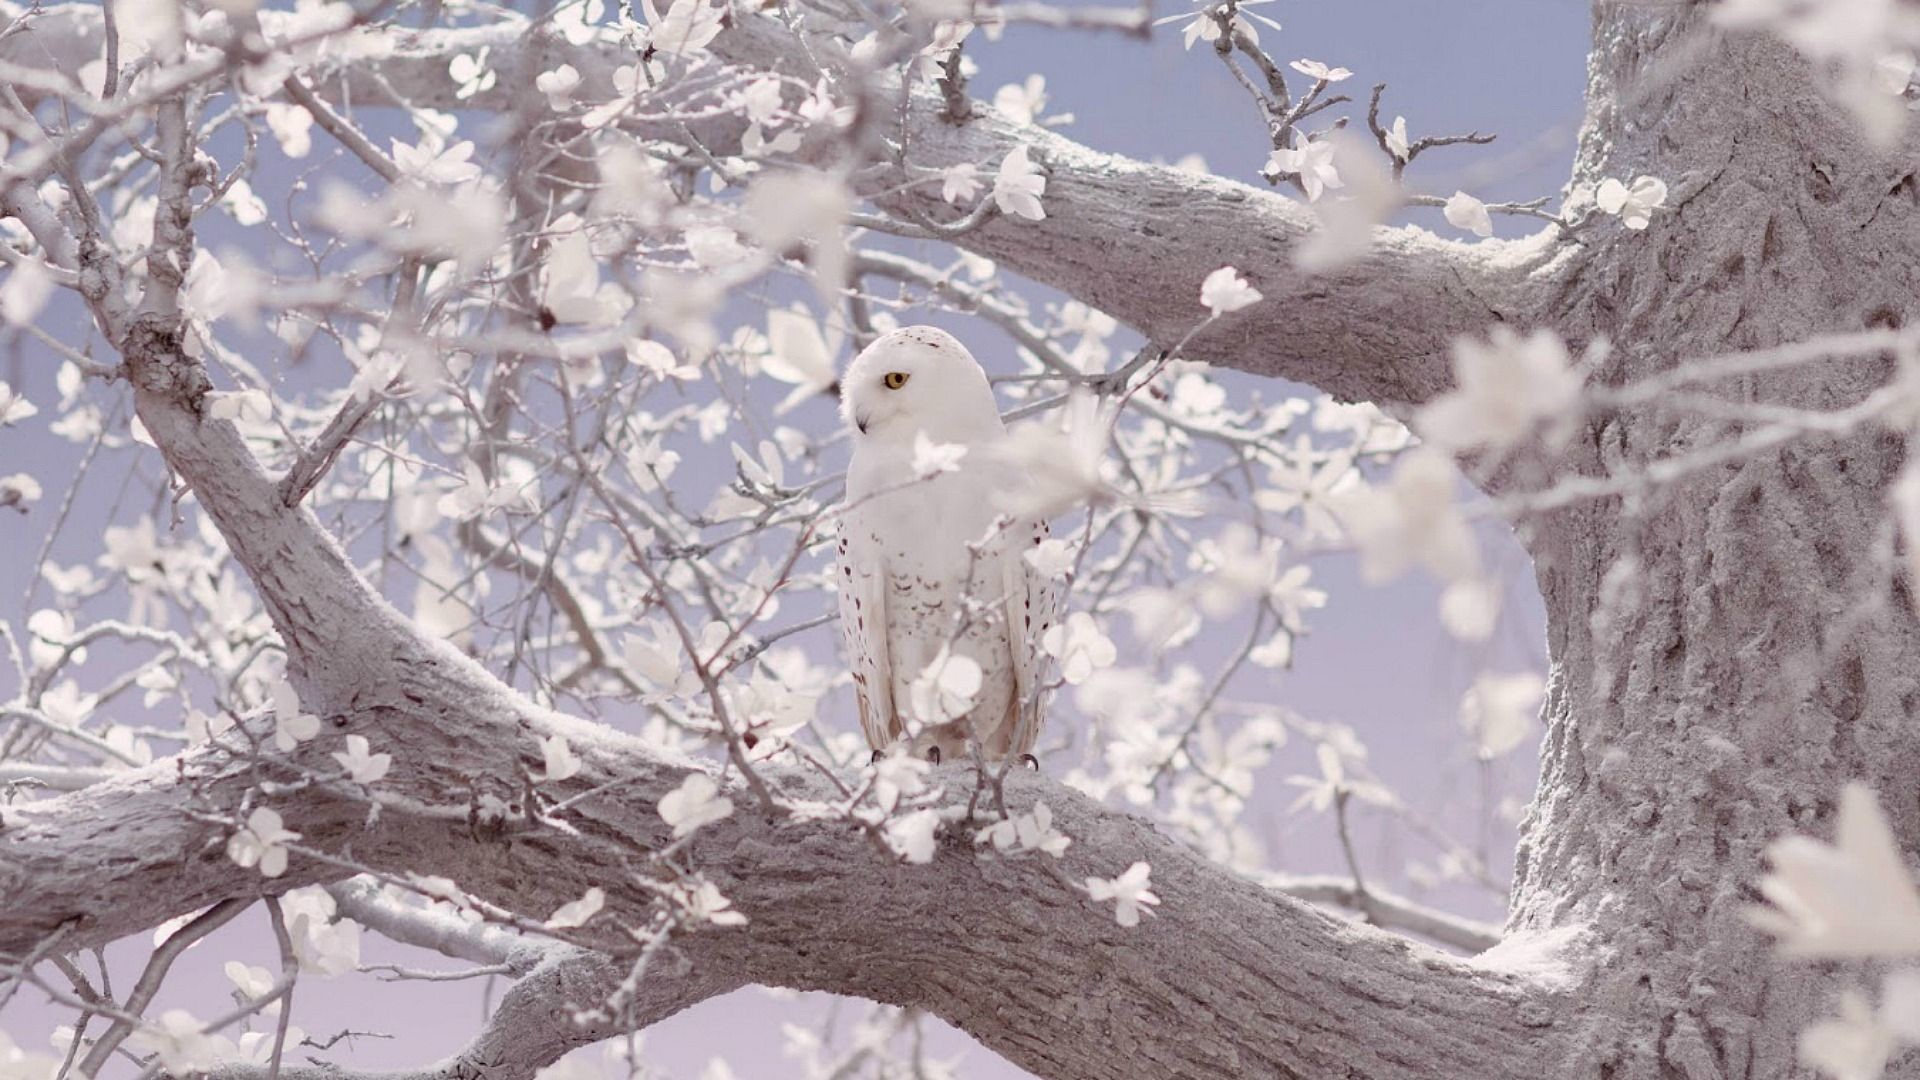 Res: 1920x1080, 1920x1200 White Owl Wallpapers 30382 1920x1200 px ~ HDWallSource.com.  1920x1200 White Owl Wallpapers ...